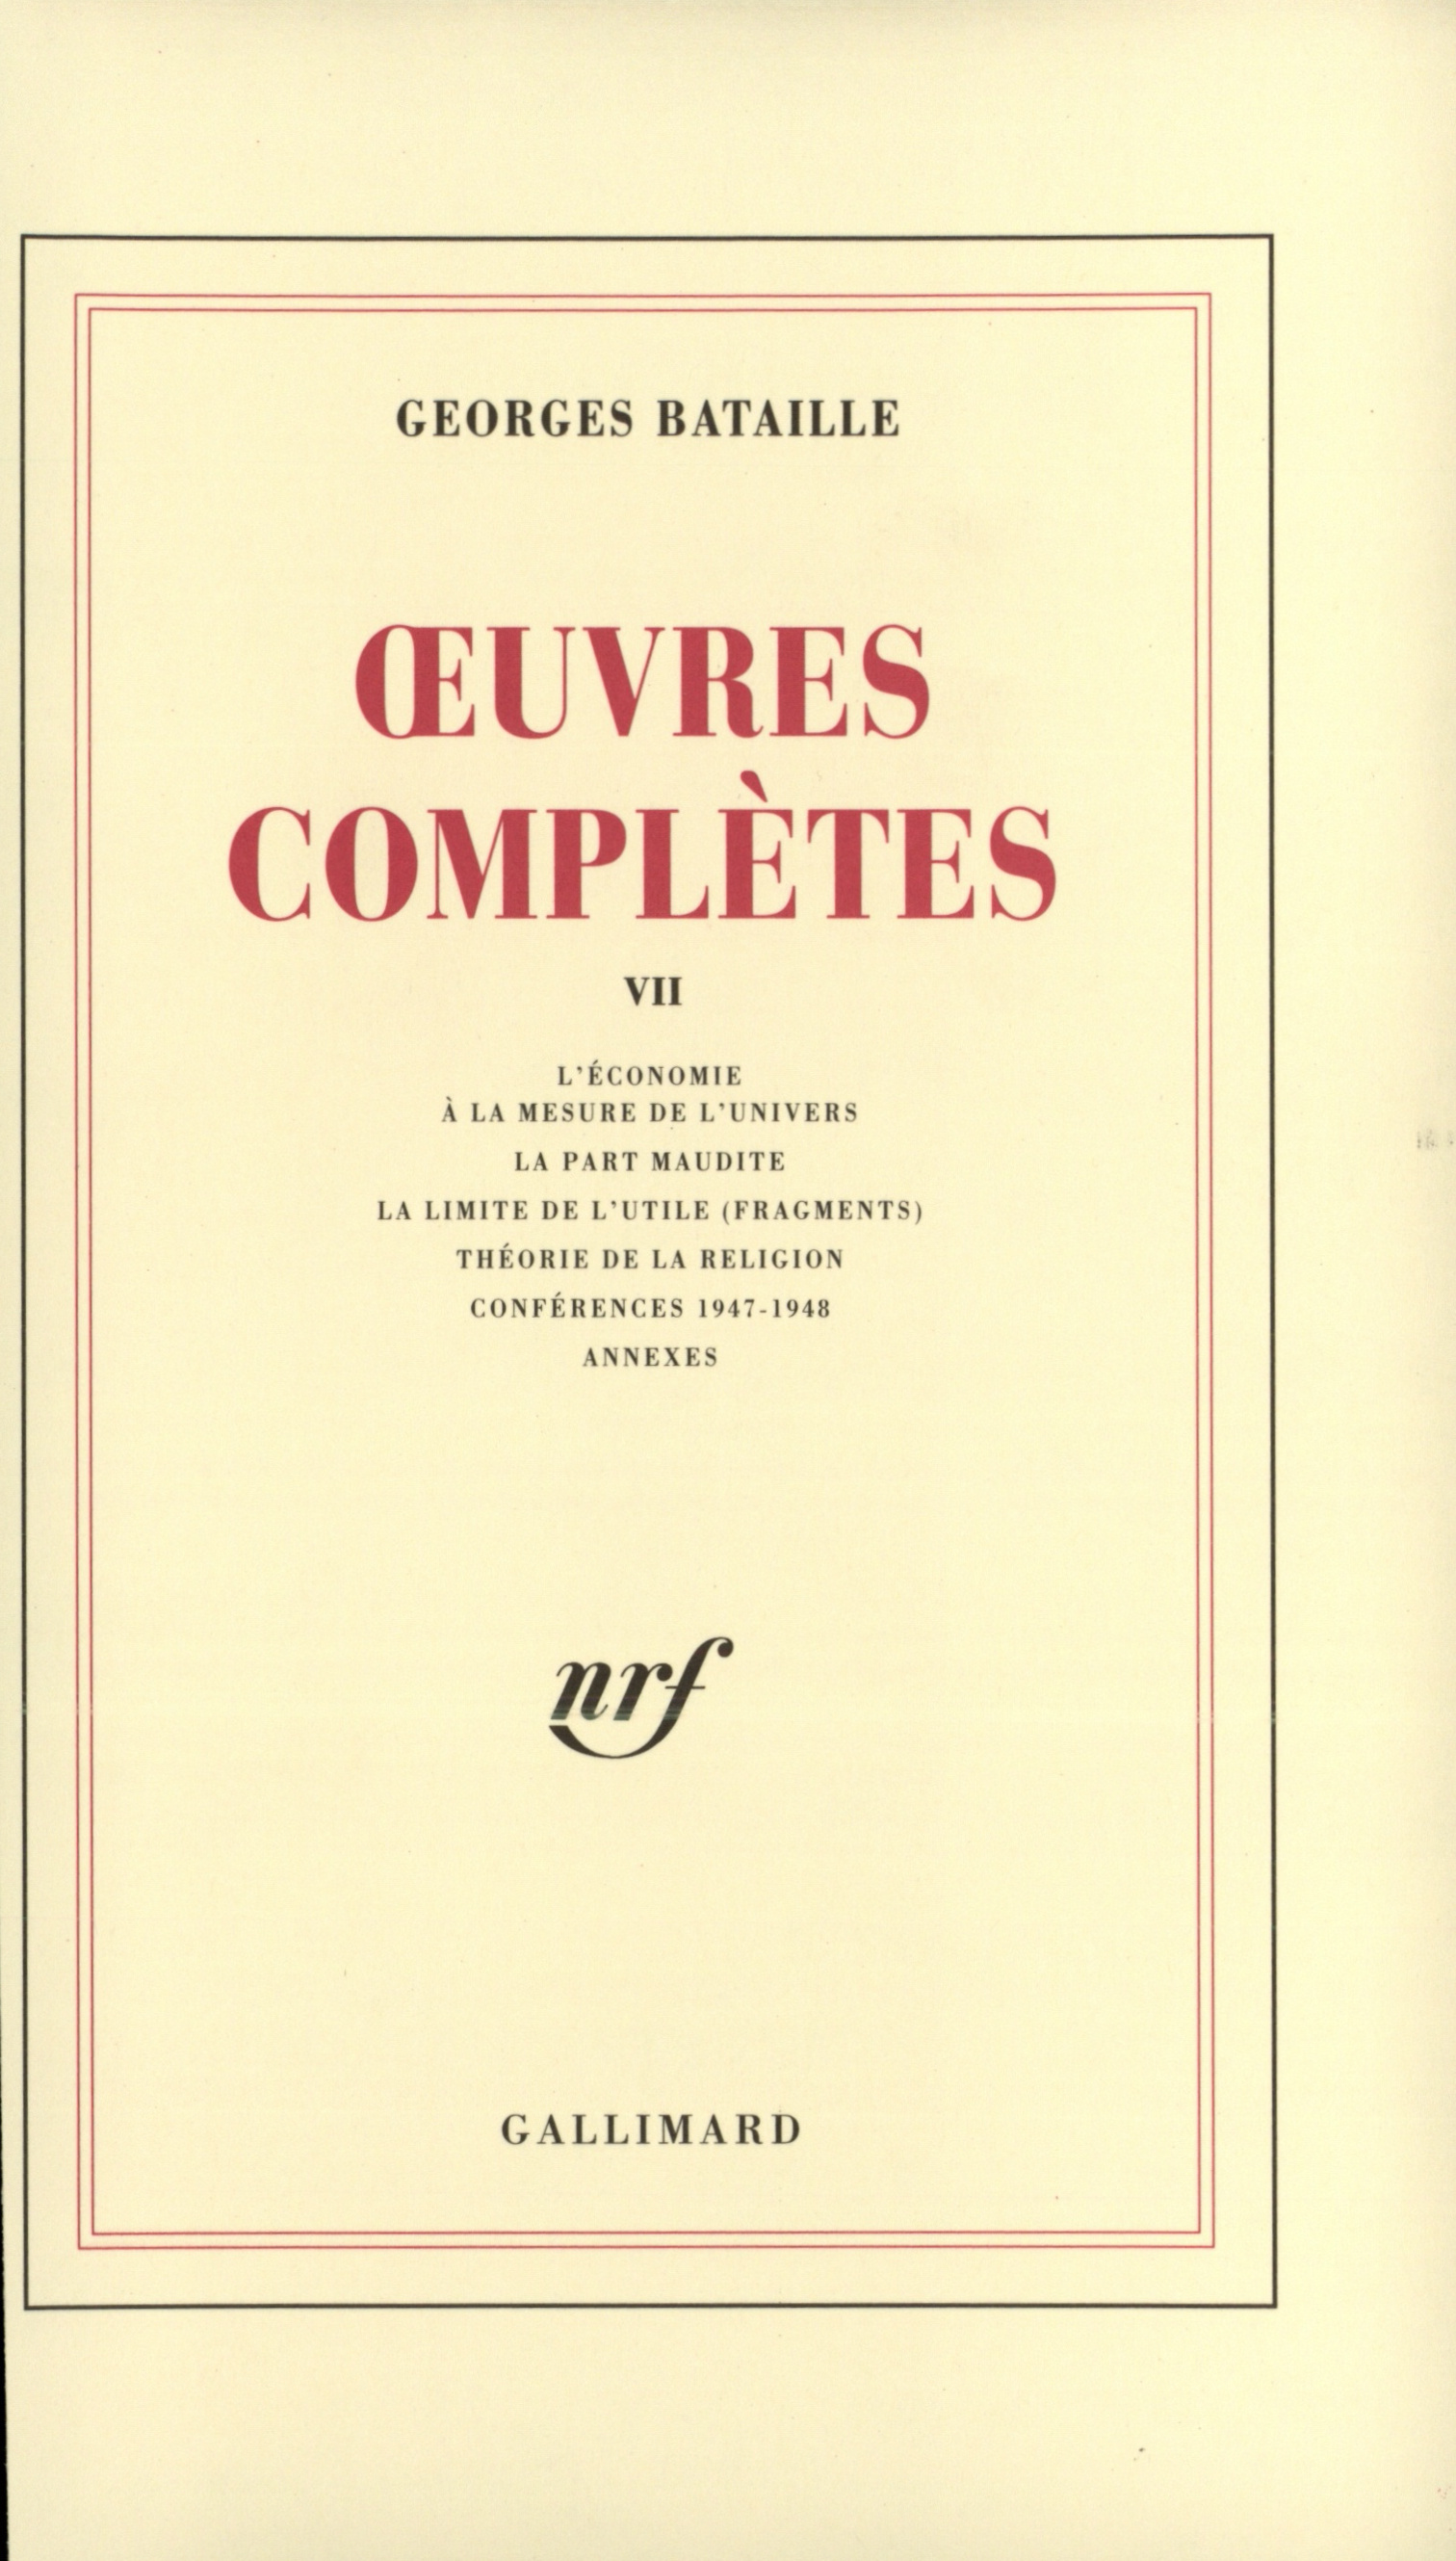 Œuvres complètes tome 7 Cover art